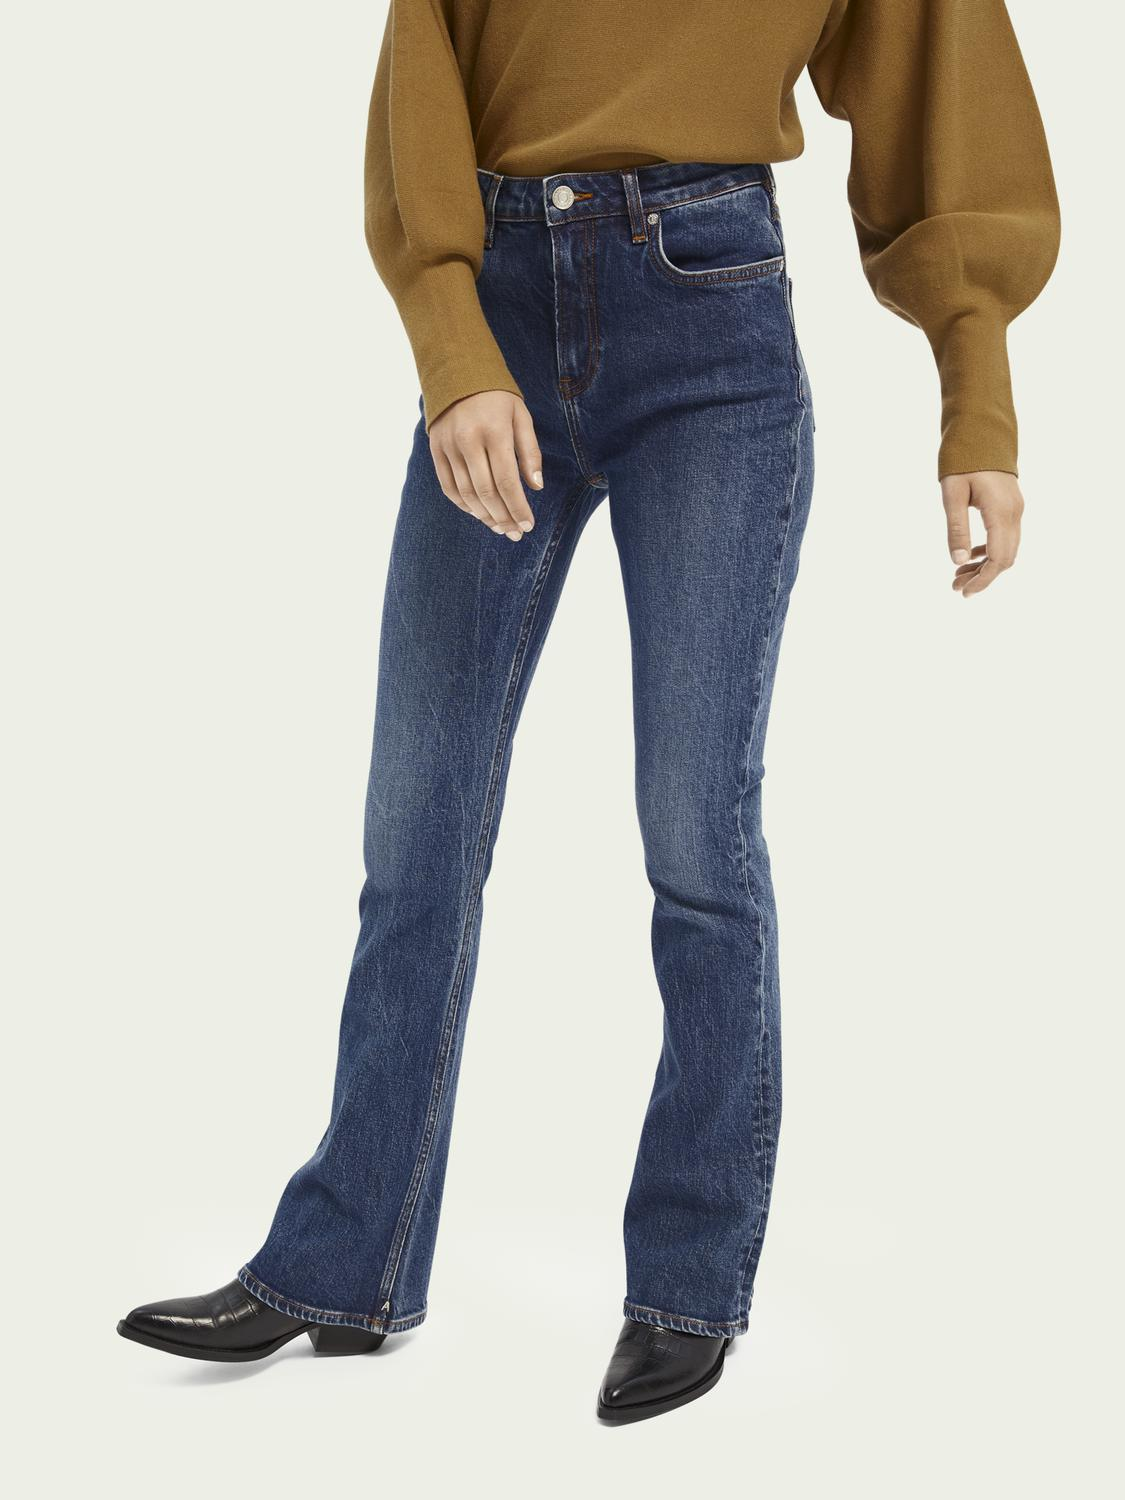 The Charm high-rise flared jeans ─ Take Me Out